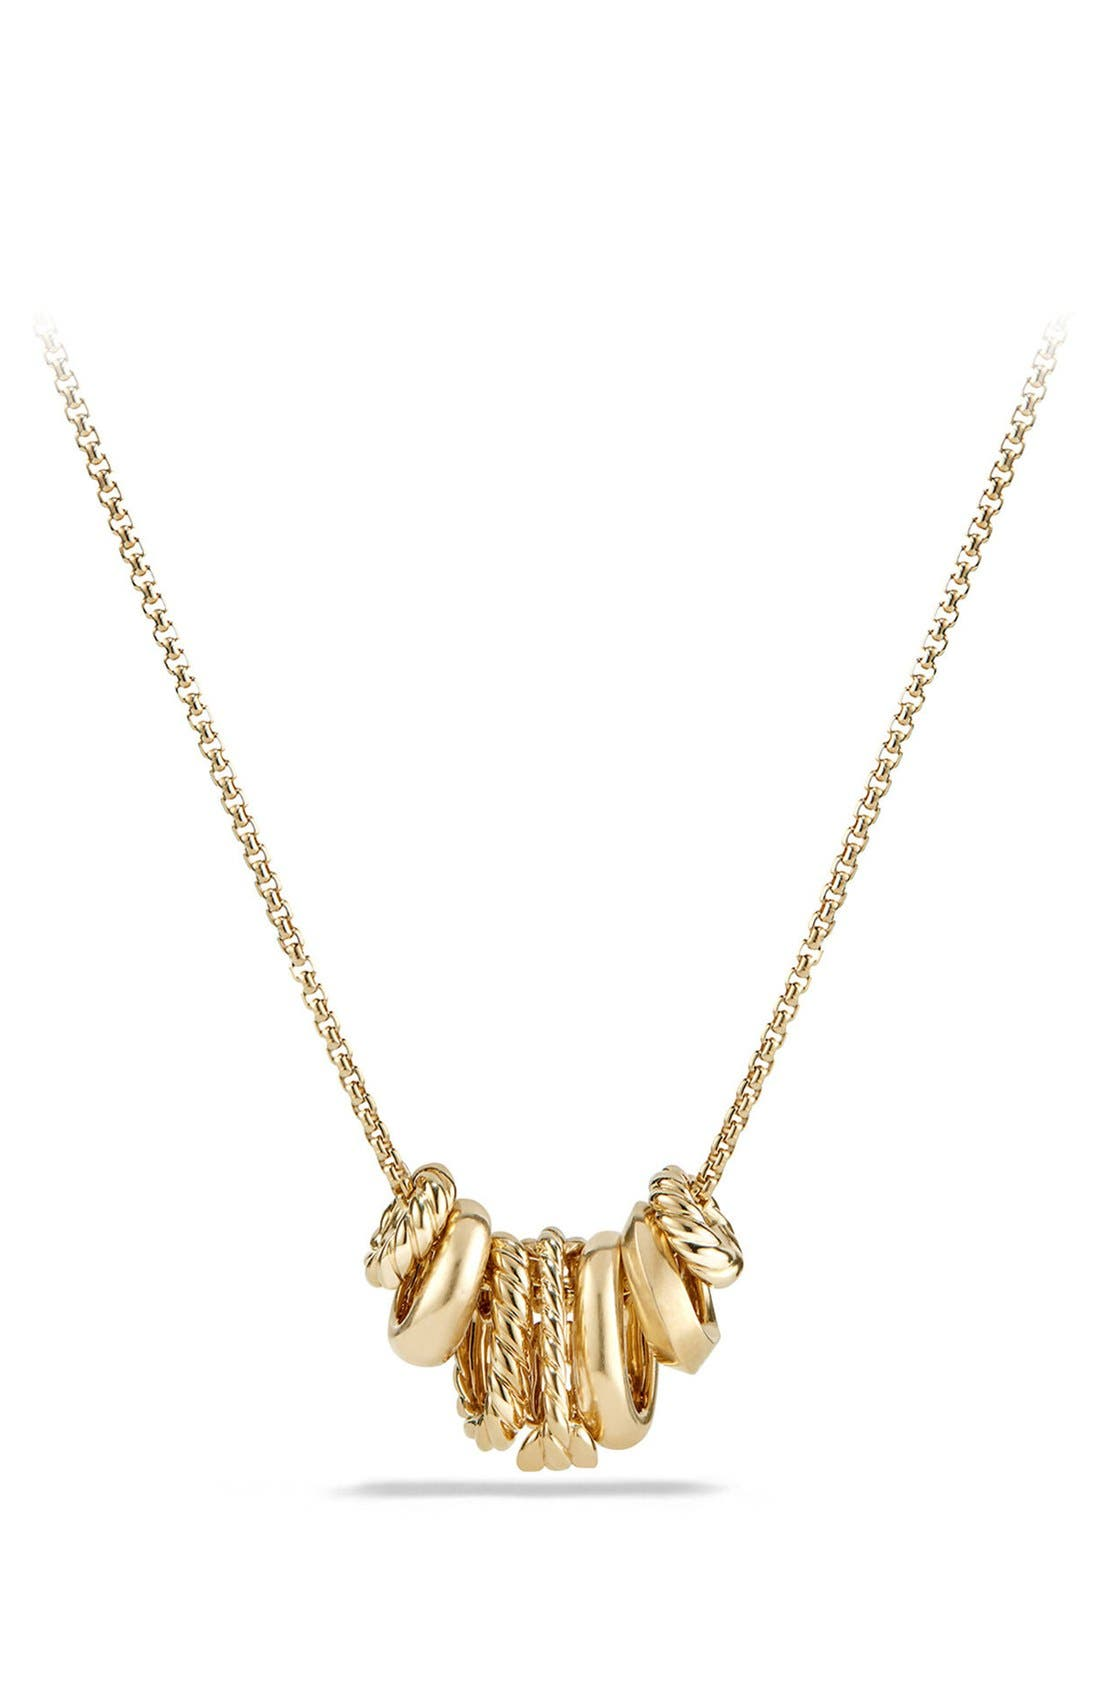 'Stax' Pendant Necklace with Diamonds in 18K Gold,                             Alternate thumbnail 3, color,                             Yellow Gold